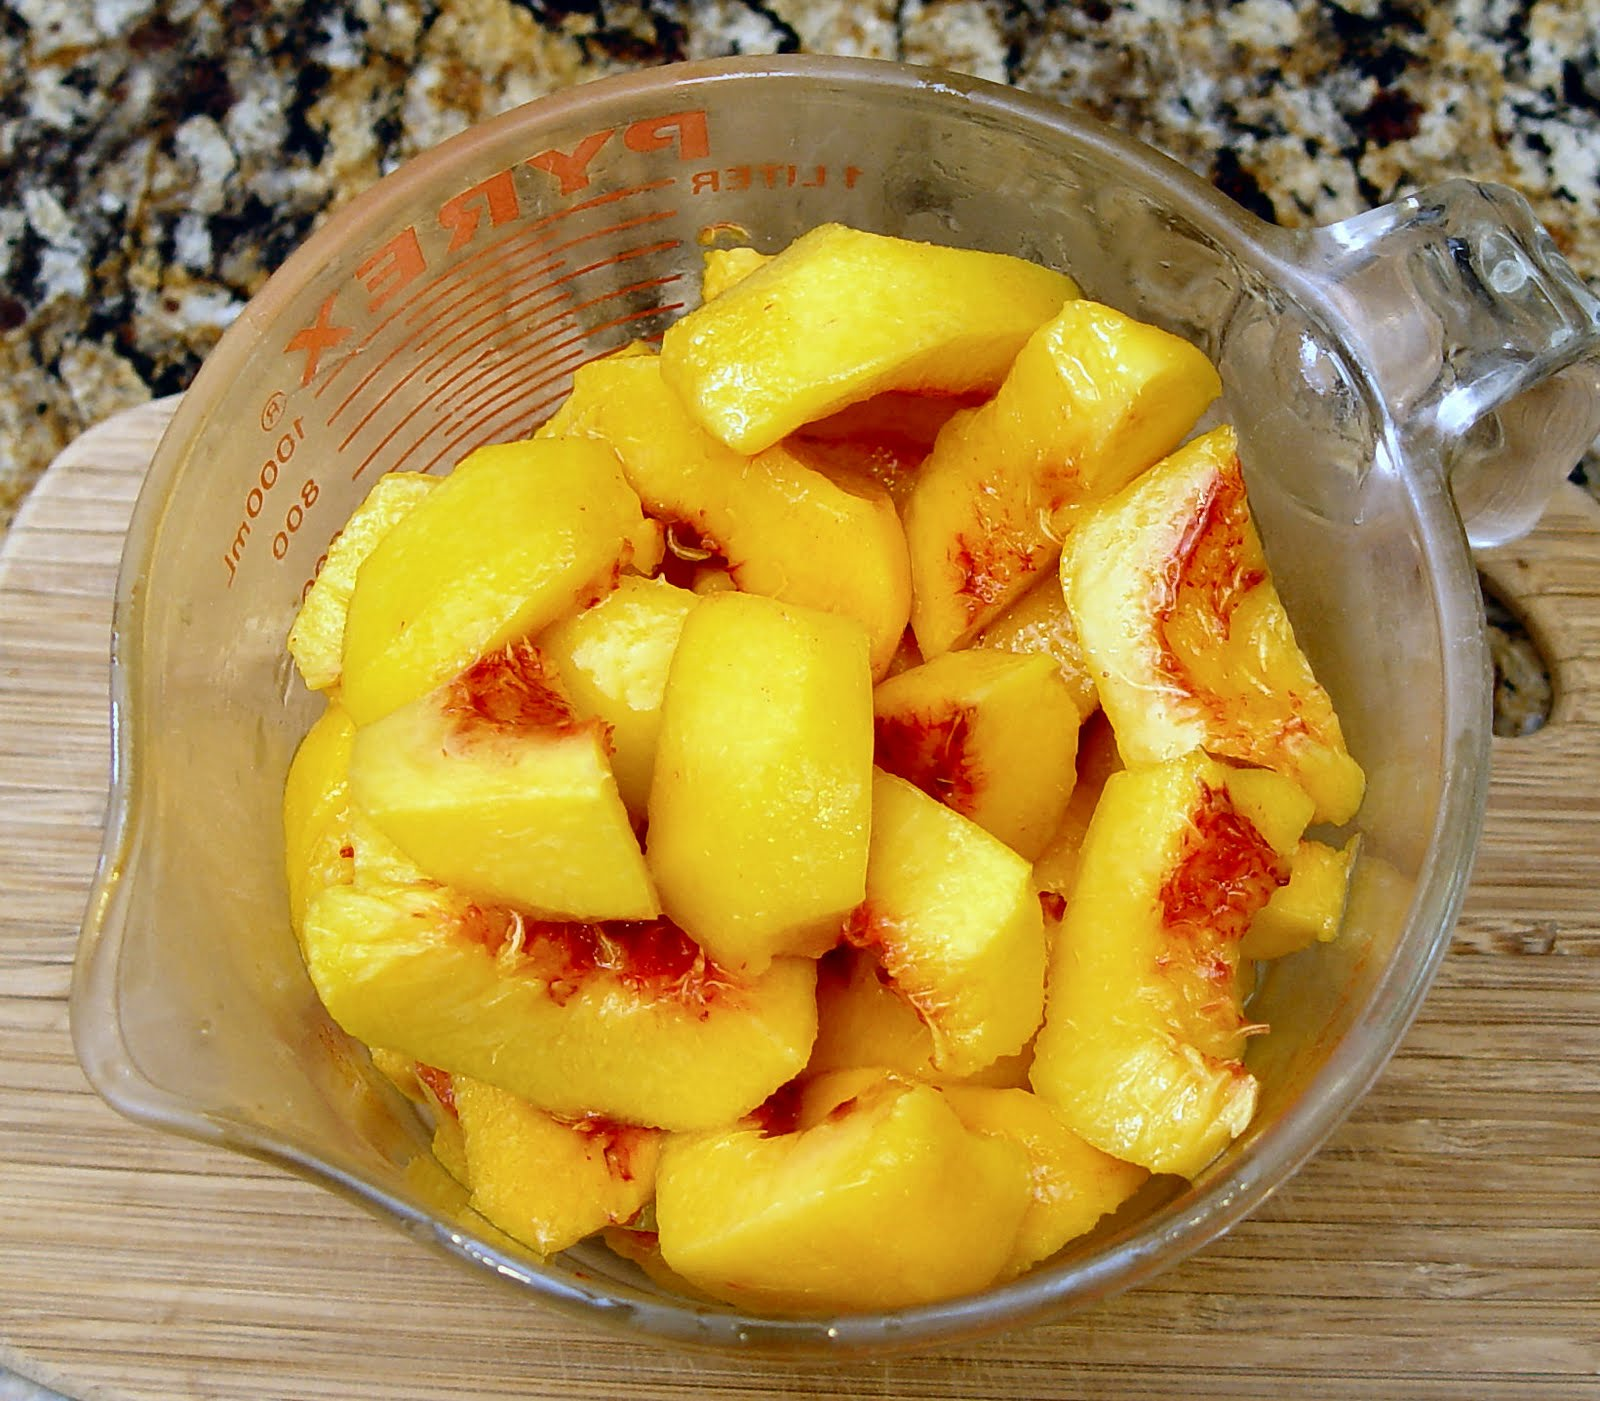 How to cut and peel peaches